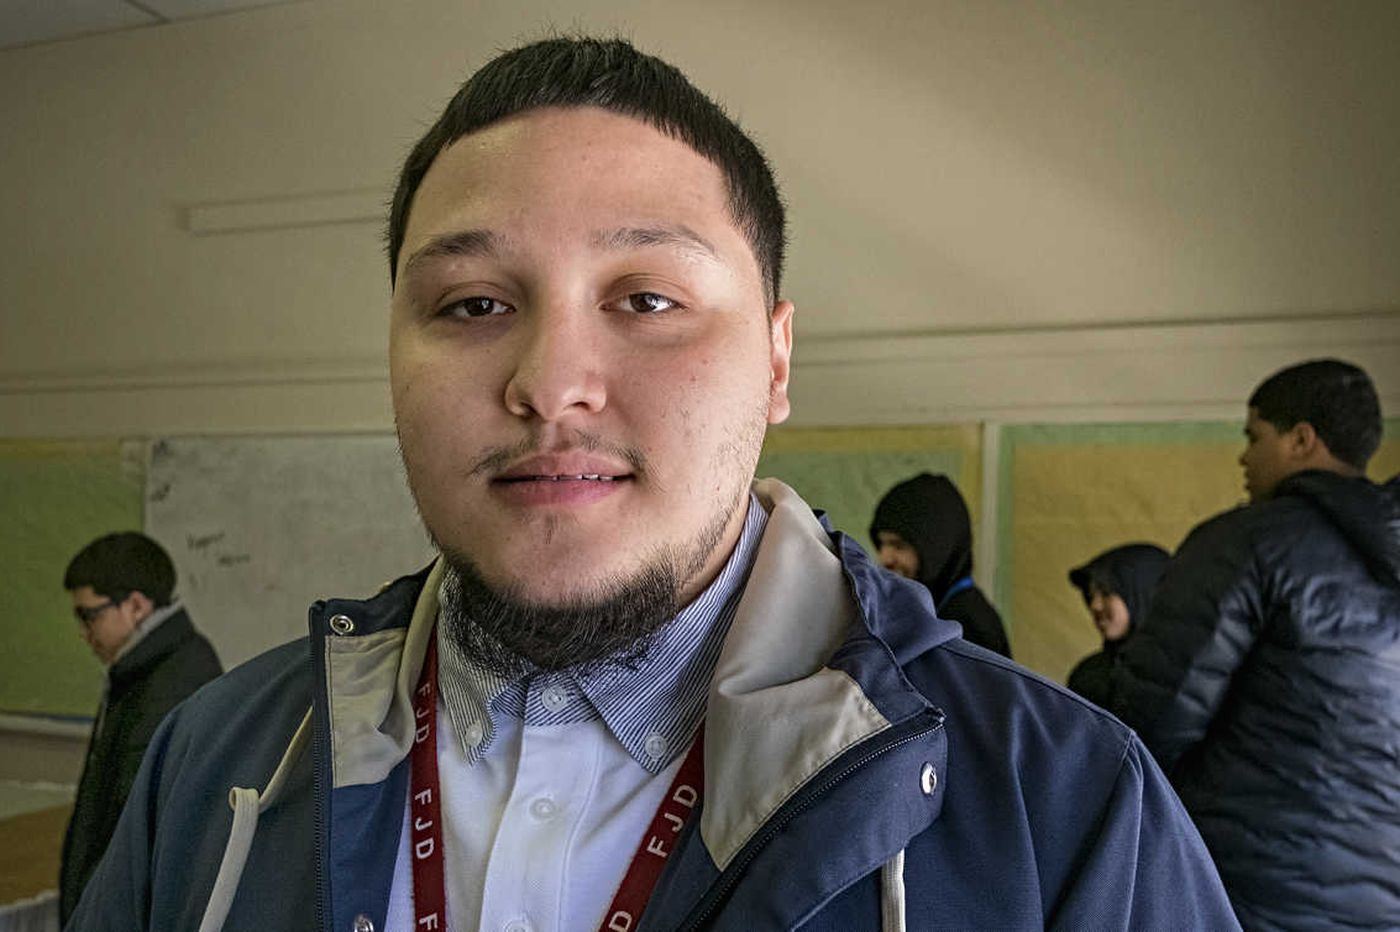 Once marked for a street life, he dreams of being a Philly cop